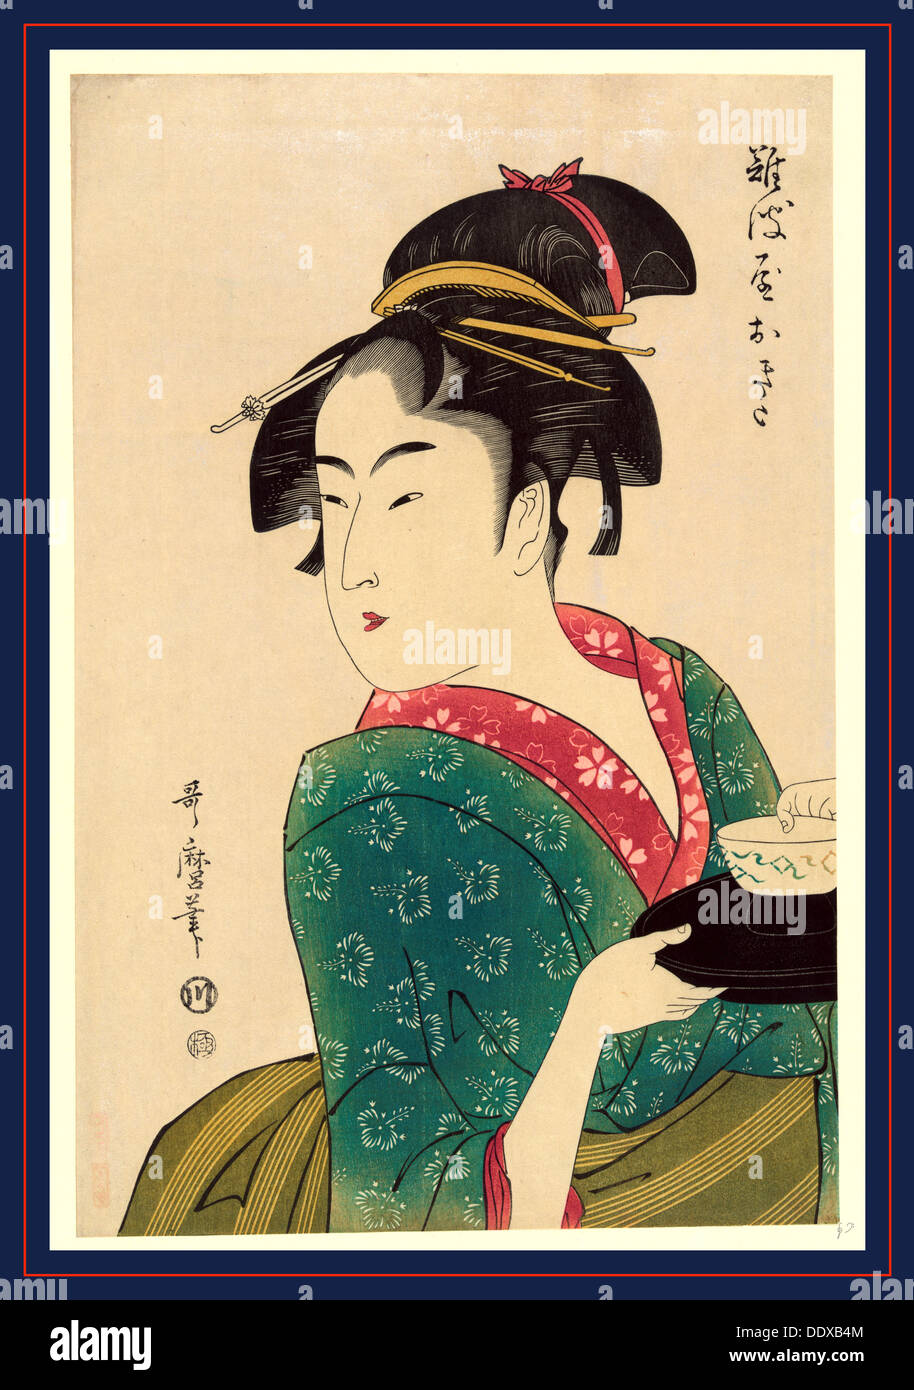 Naniwaya okita, Okita of Naniwa-ya. [1793, printed later], 1 print : woodcut, color., Print shows Naniwaya Okita - Stock Image